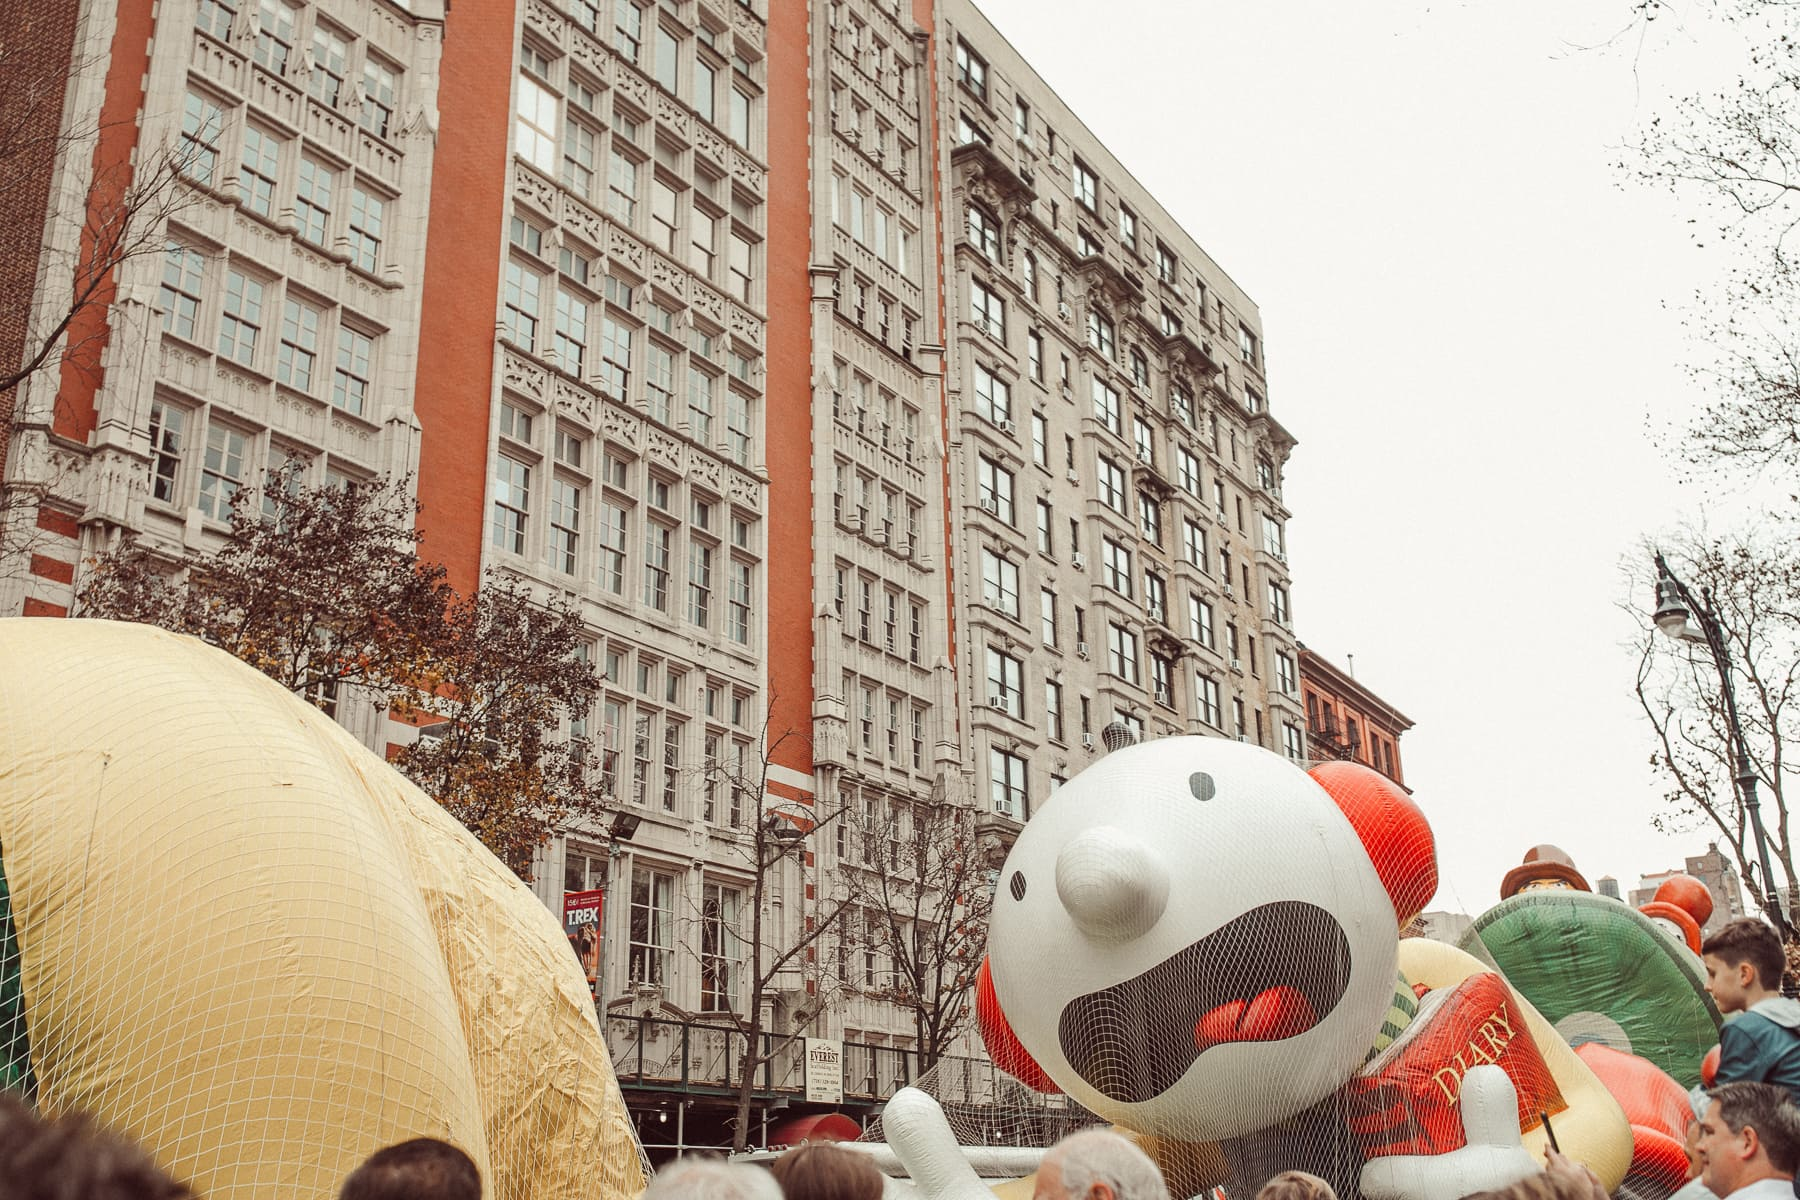 thanksgiving day parade floats